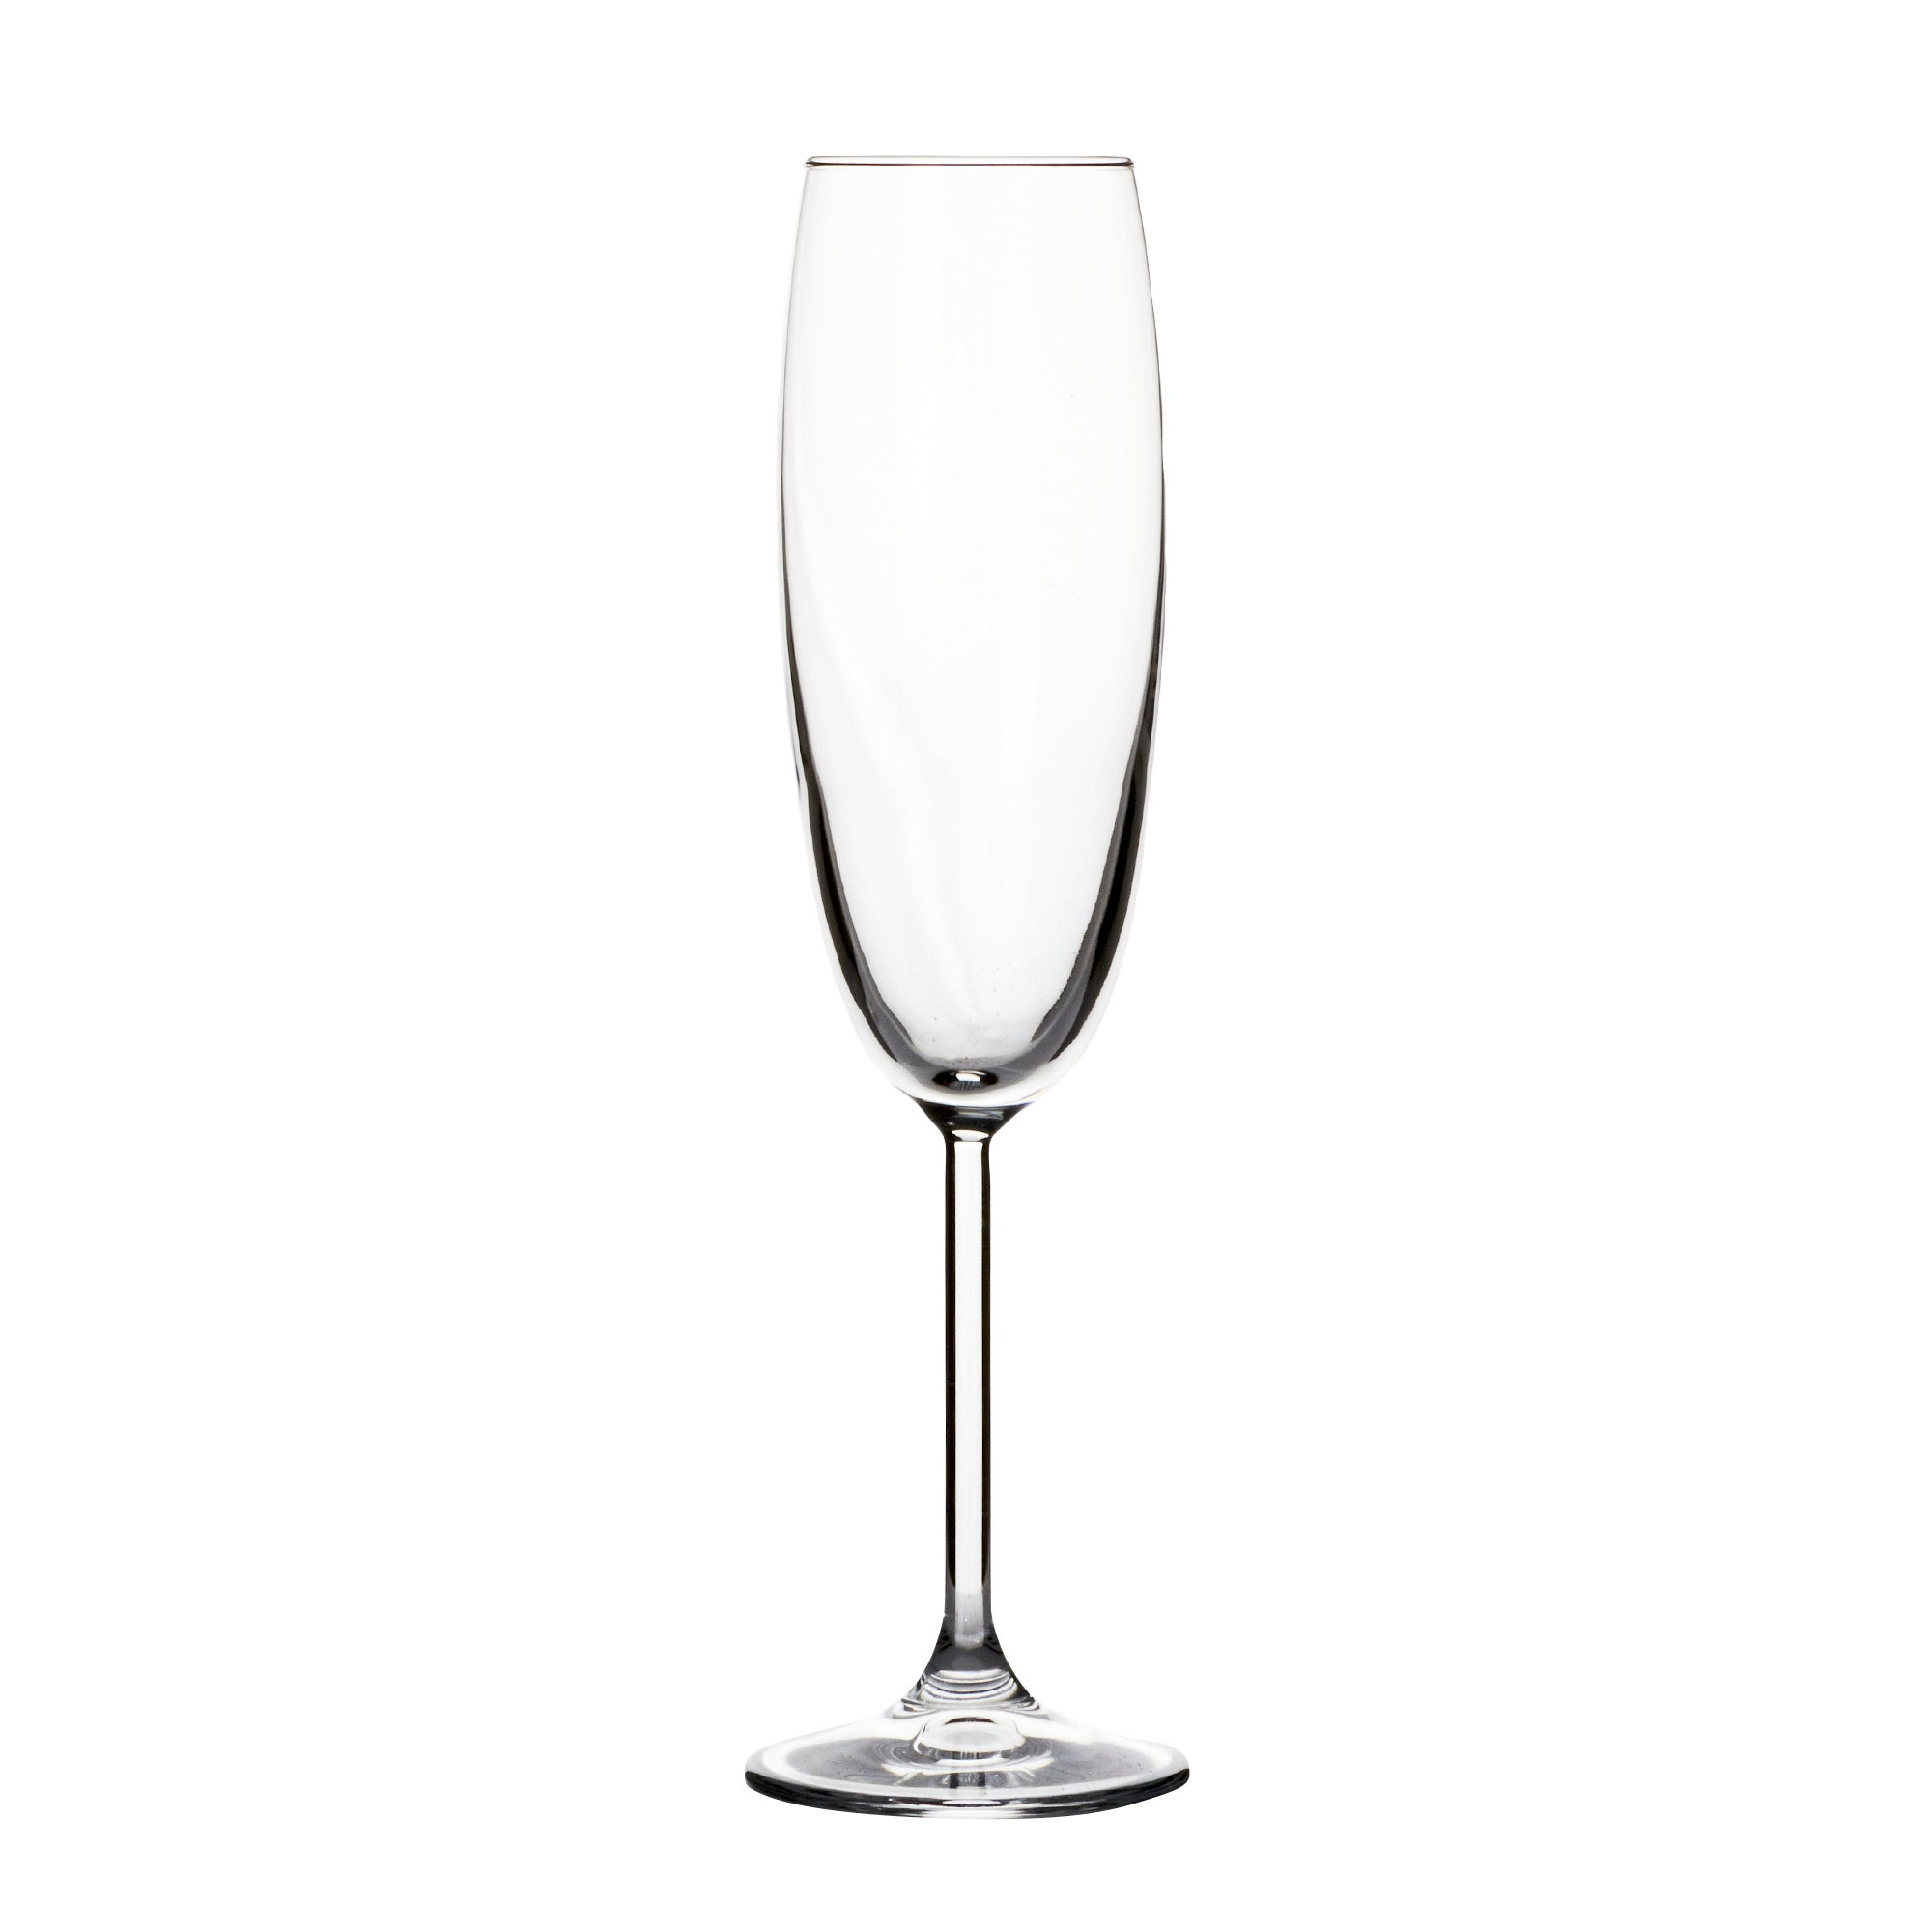 Sidara 22cl Champagne Flute Glass